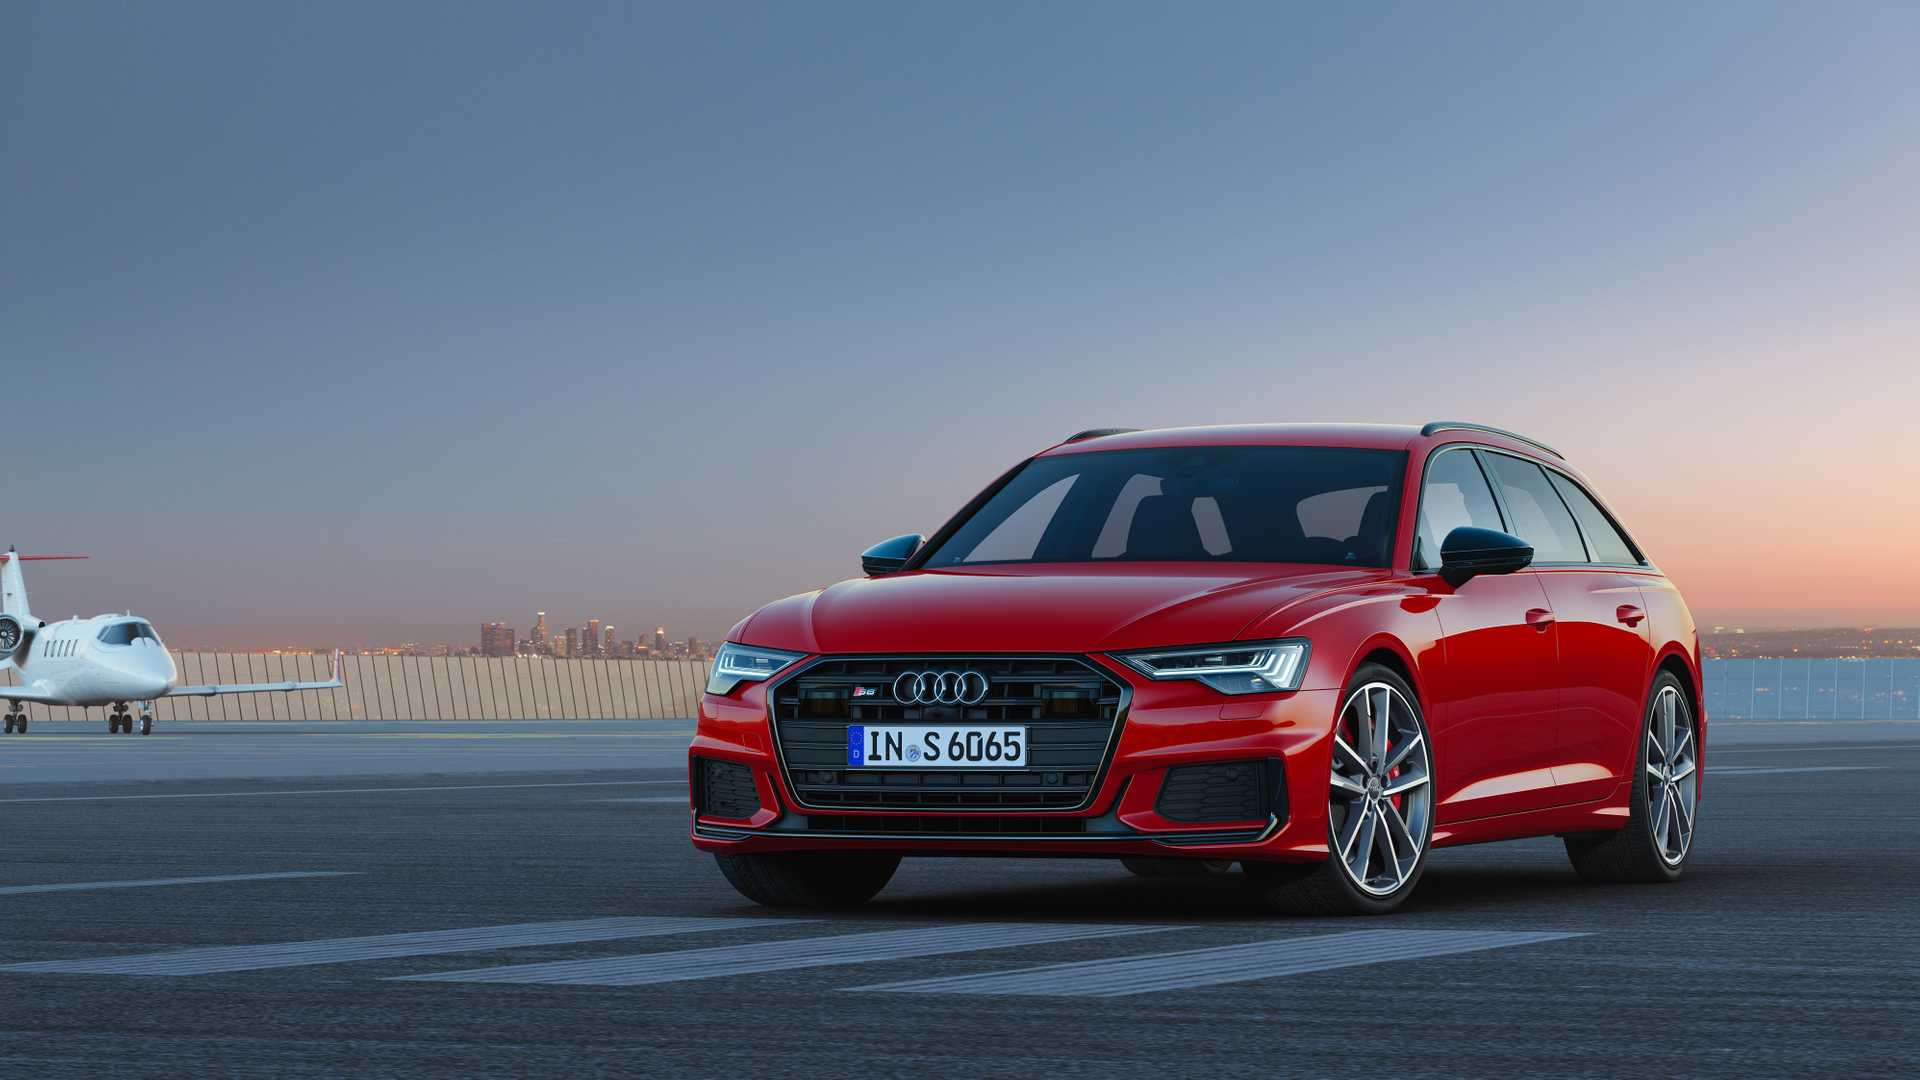 2019 Audi S6 Avant TDI (Color: Tango Red) Front Three-Quarter Wallpapers (10)